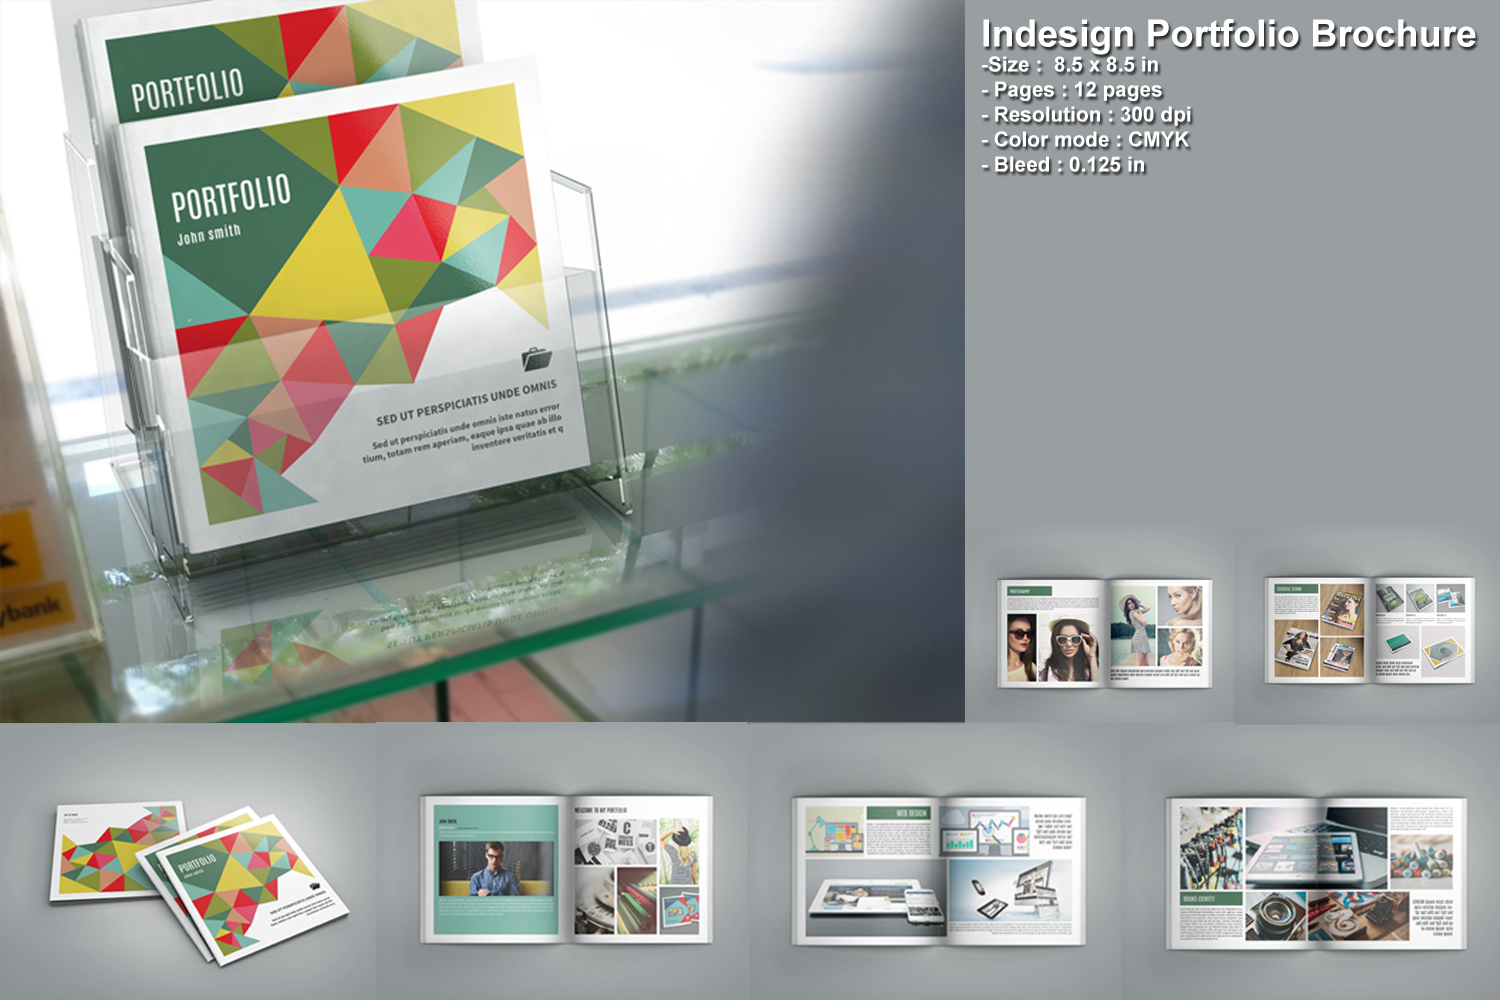 indesign templates for brochures - indesign portfolio brochure v207 brochure templates on